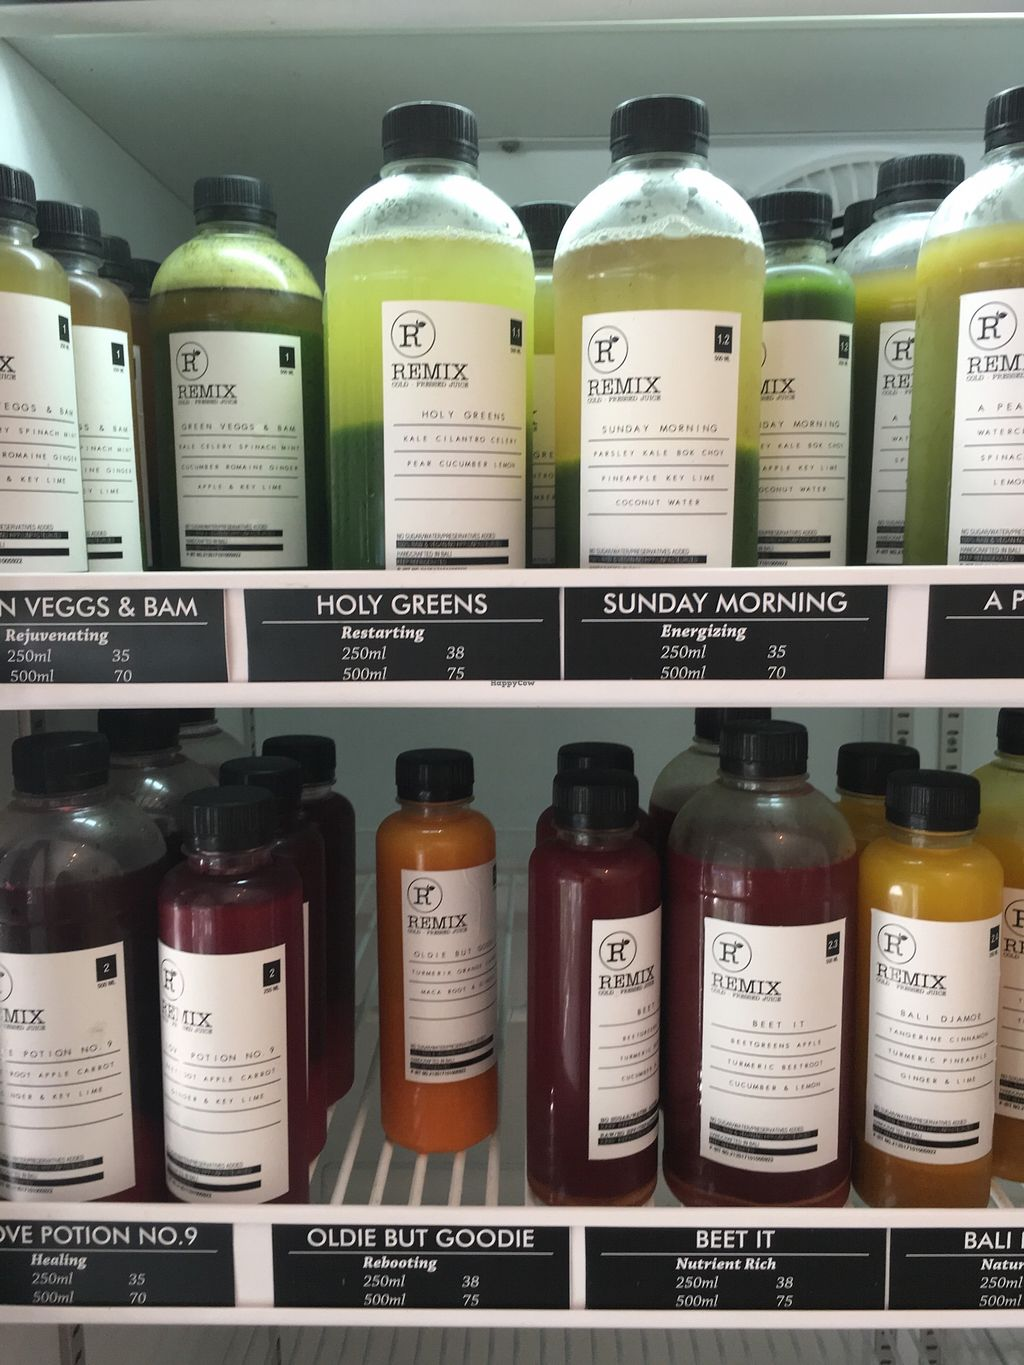 "Photo of Remix Bali  by <a href=""/members/profile/vanofvegan"">vanofvegan</a> <br/>Cold pressed juices <br/> January 29, 2018  - <a href='/contact/abuse/image/110378/352236'>Report</a>"